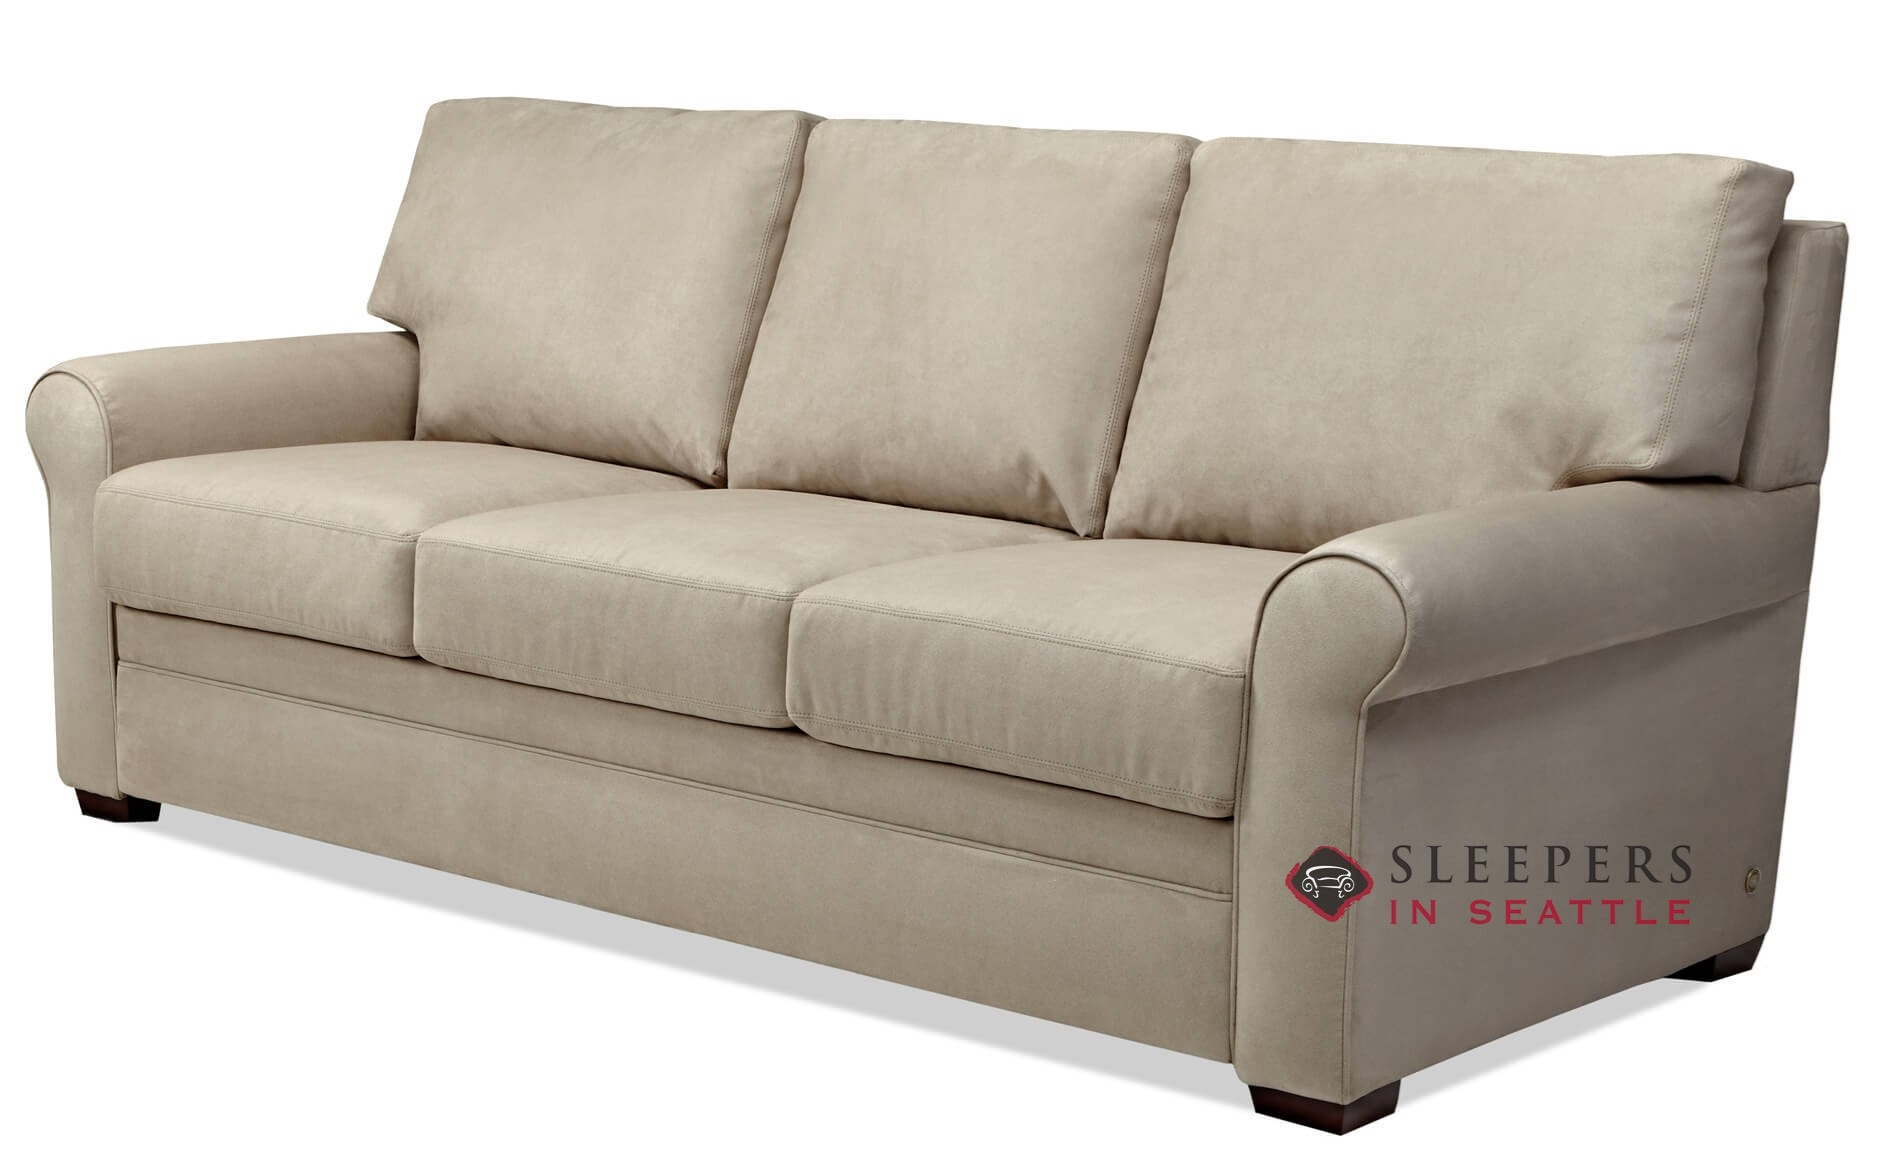 american leather sleeper sofa full size chaise lounge customize and personalize gaines multiple sizes available